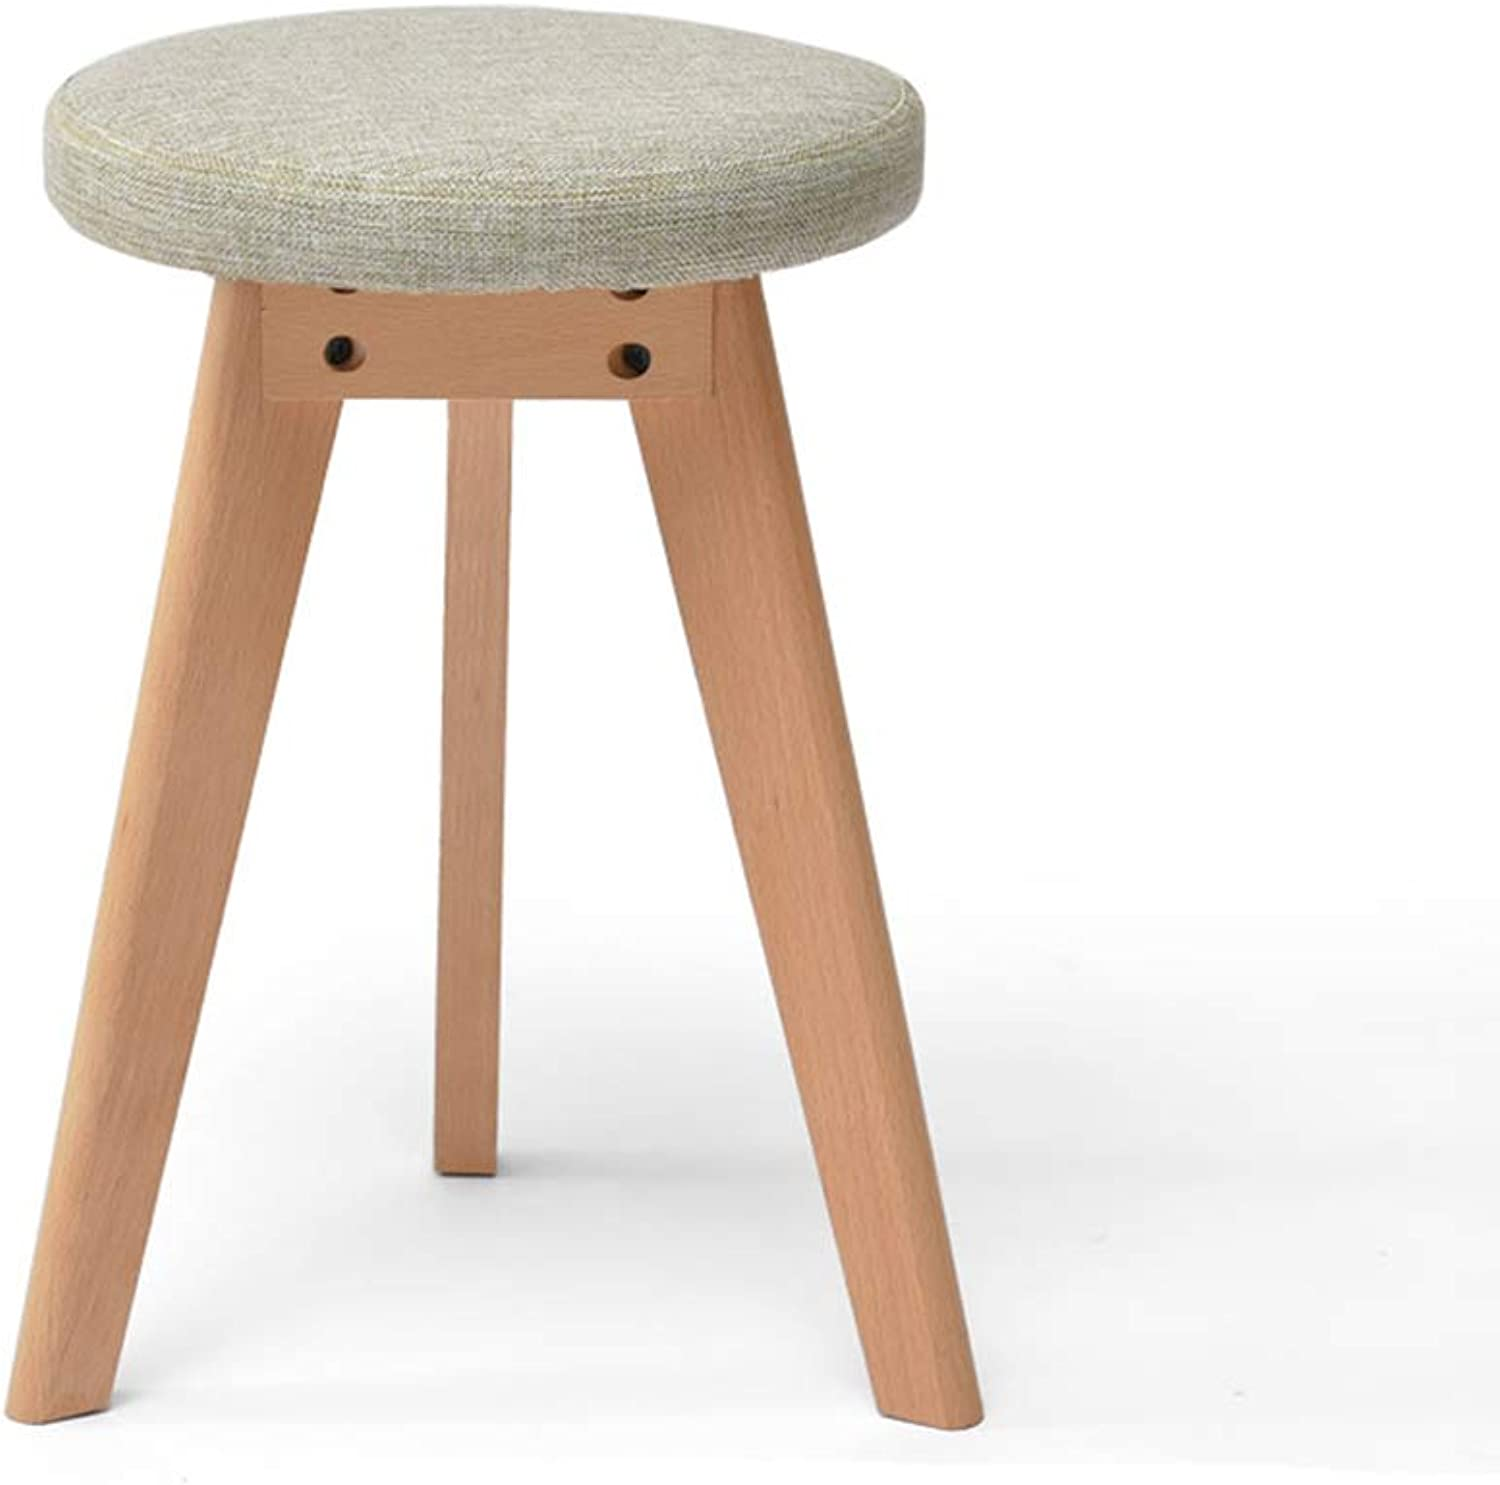 Solid Wood Stool Fabric Makeup Stool Home Dining Table Stool Nordic Small Bench Washable Stool Cover (color   B)